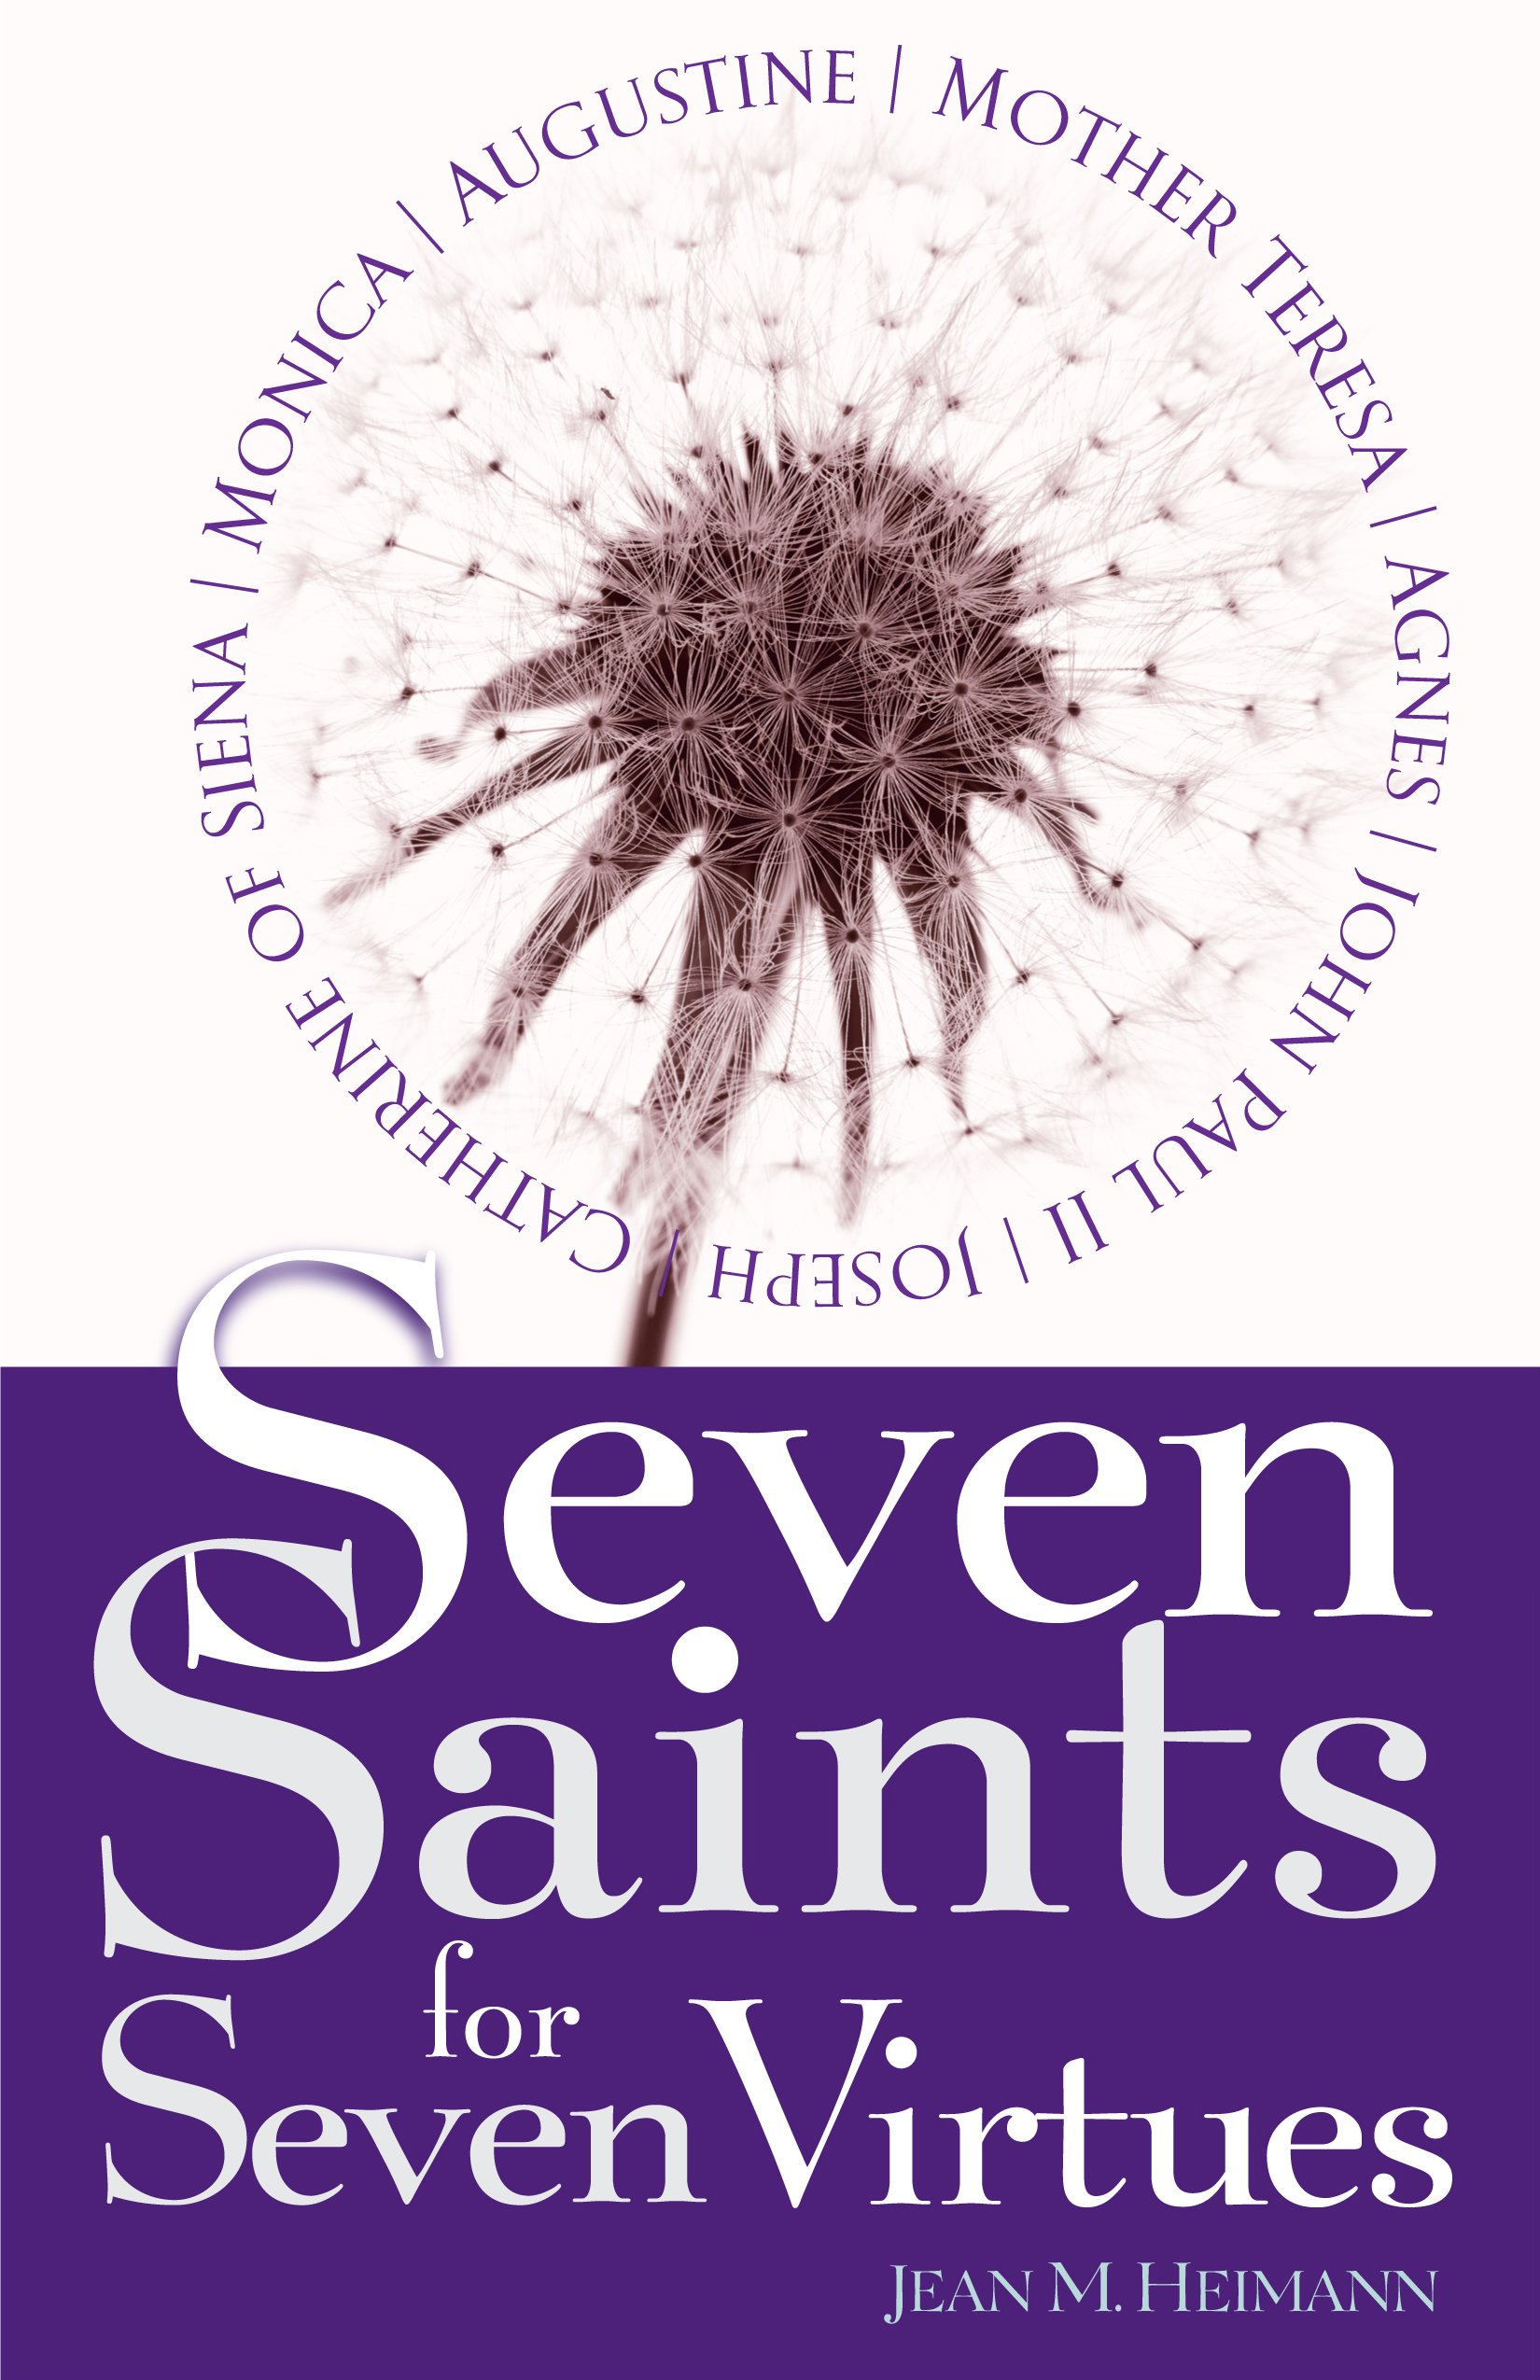 Saints and Virtues, All in One New Book [At the Register]